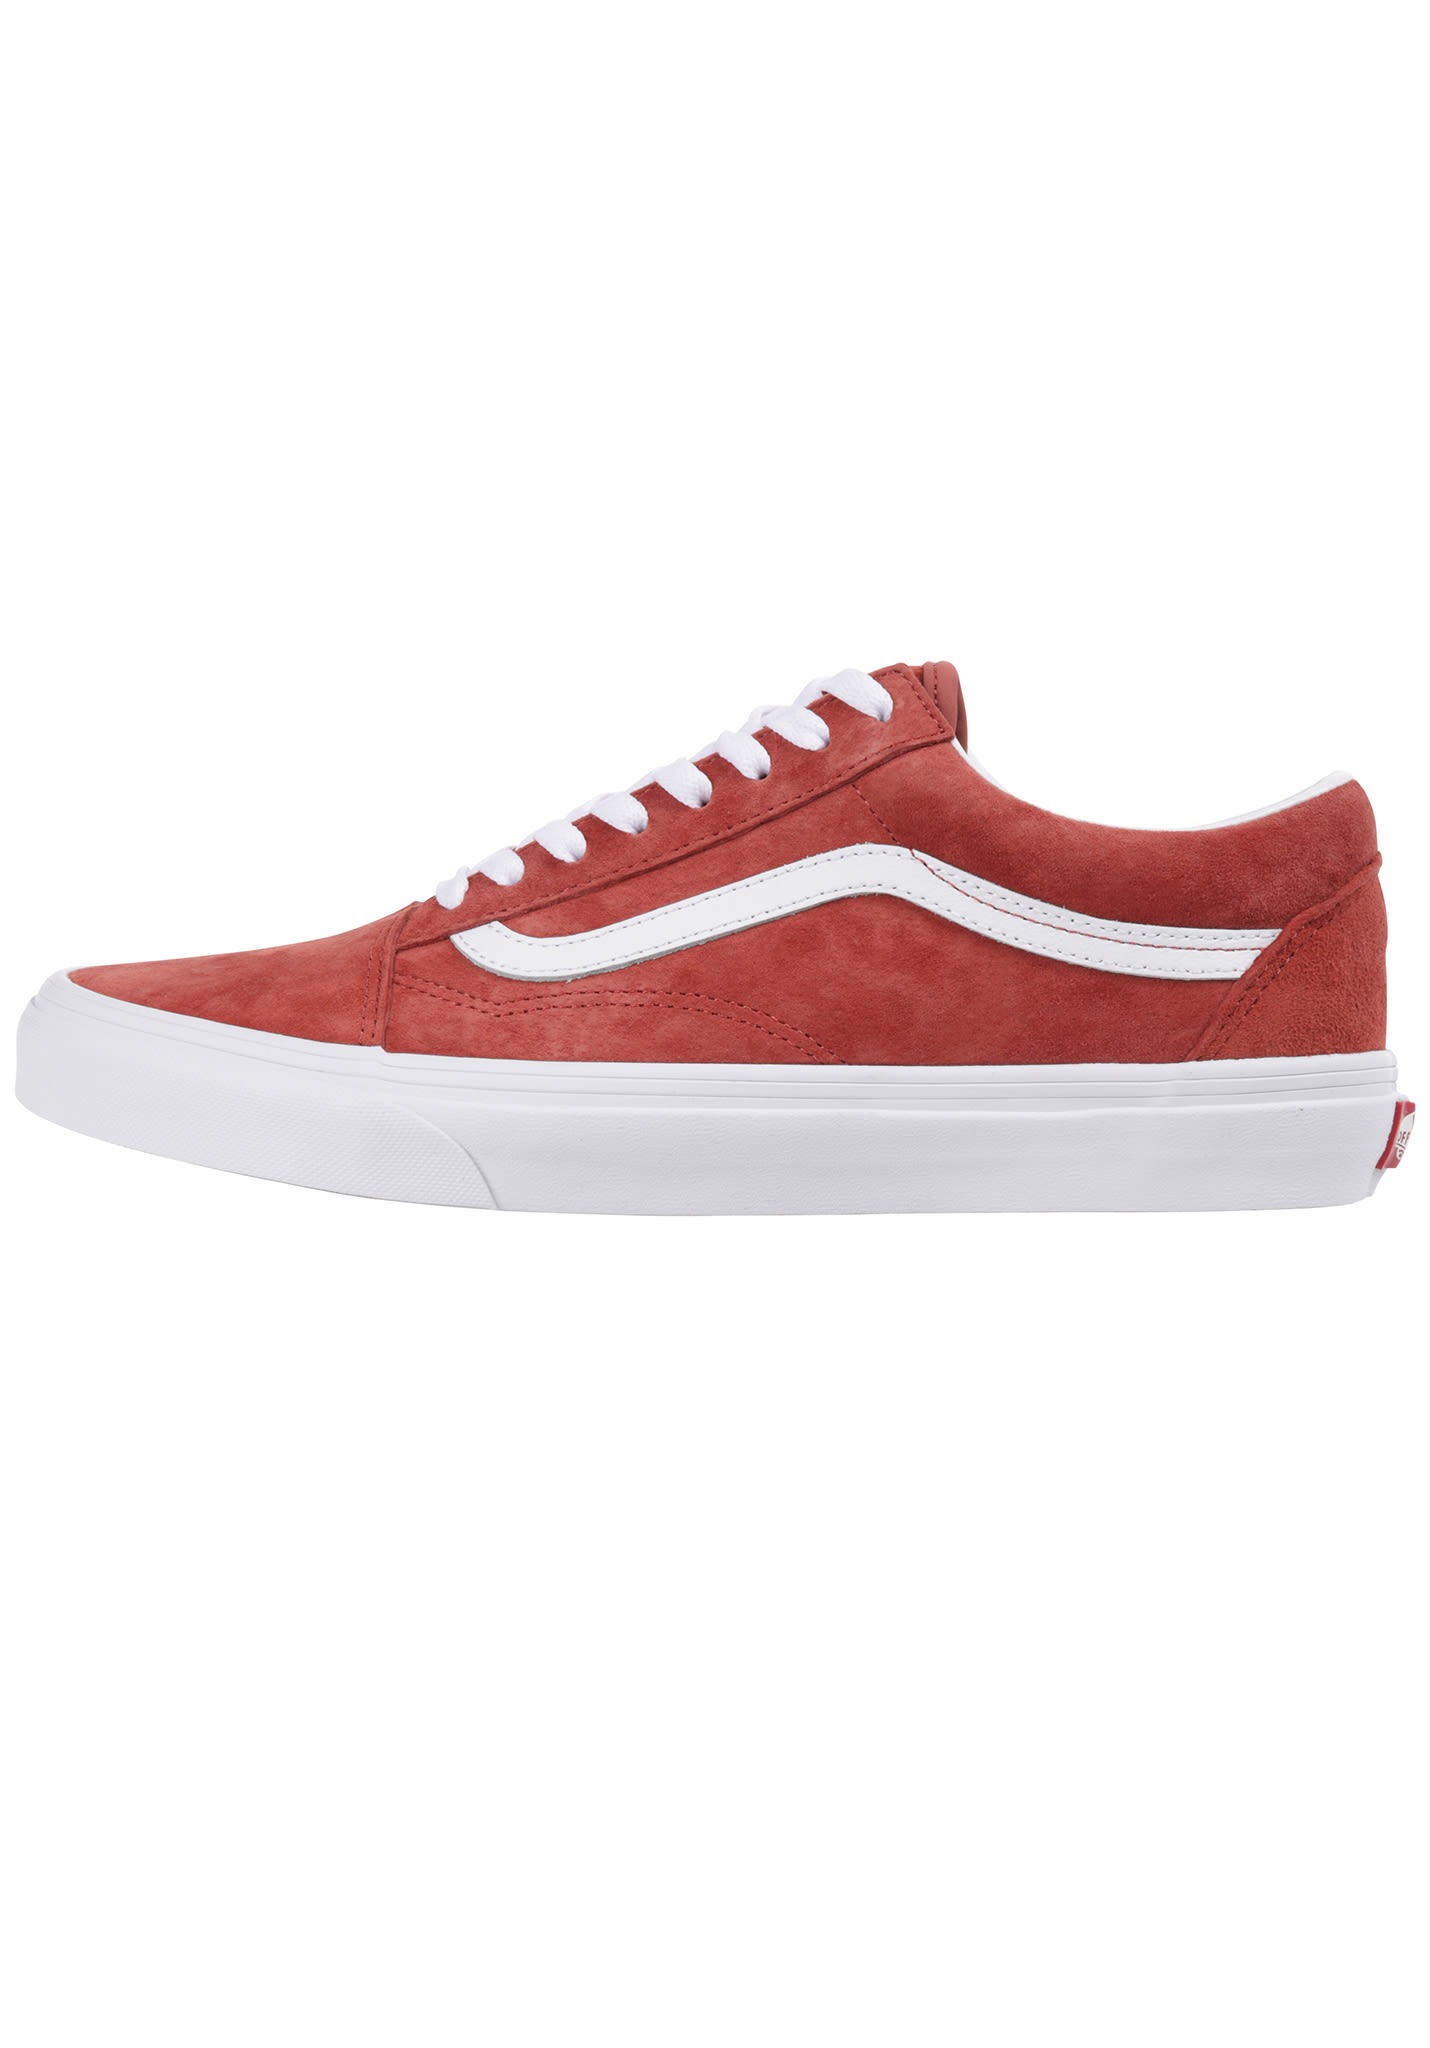 Vans Old Skool - Baskets pour Homme - Rouge